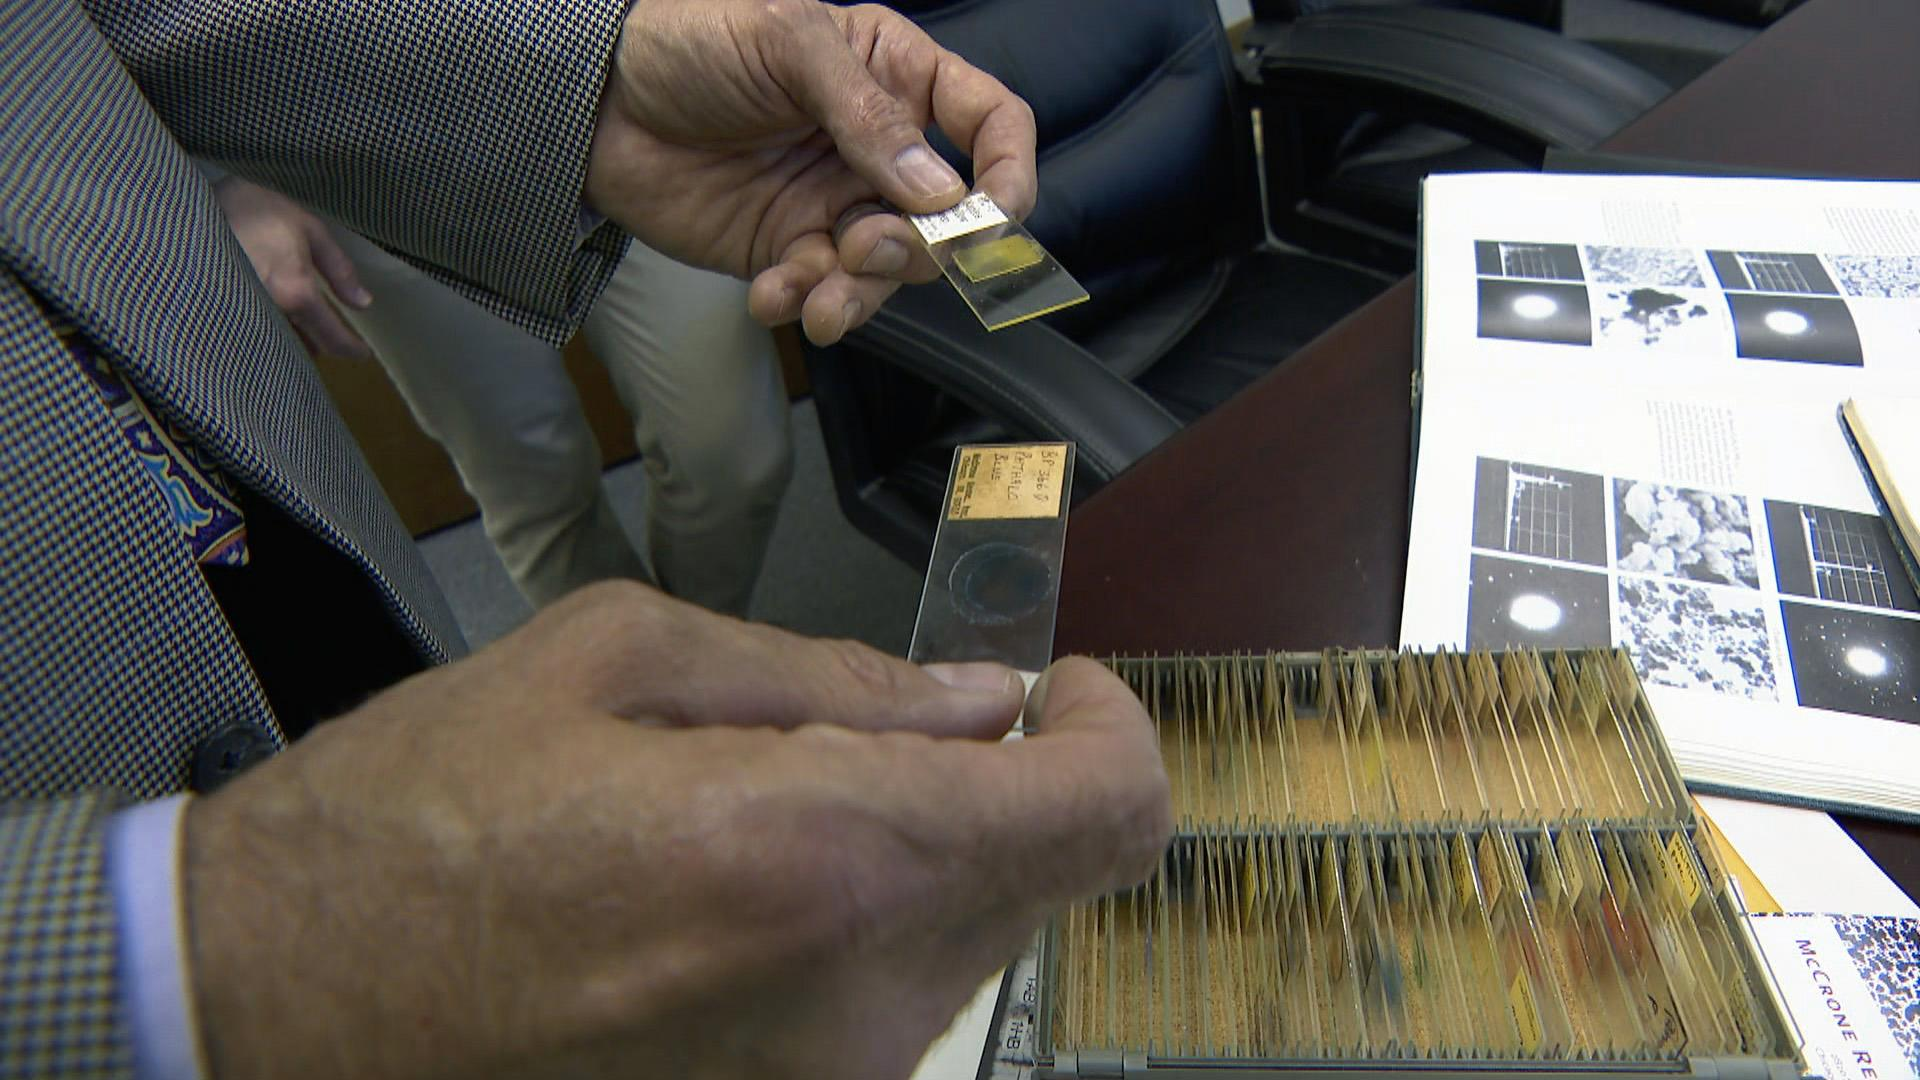 Gary Laughlin handles specimens at the McCrone Research Institute in Bronzeville, founded in 1960 by Walter McCrone.  (WTTW News)